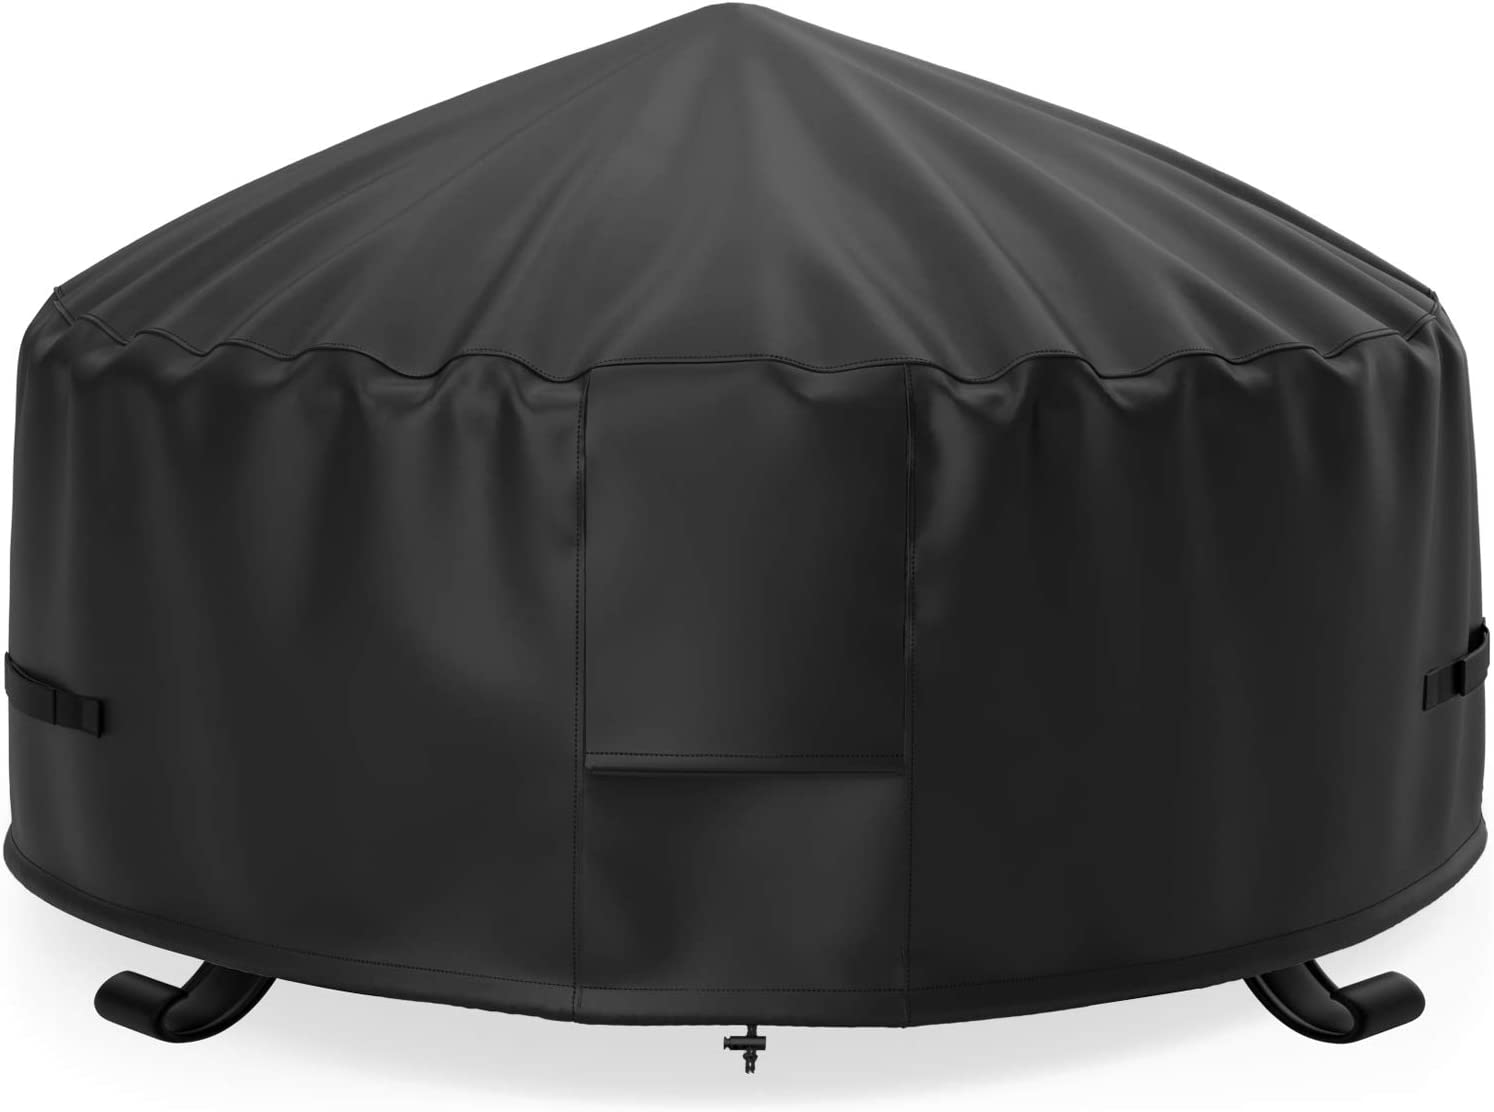 NUPICK 32 Inch Round Fire Pit Cover Landmann Max 50% OFF H Weekly update Sky 600D Big for